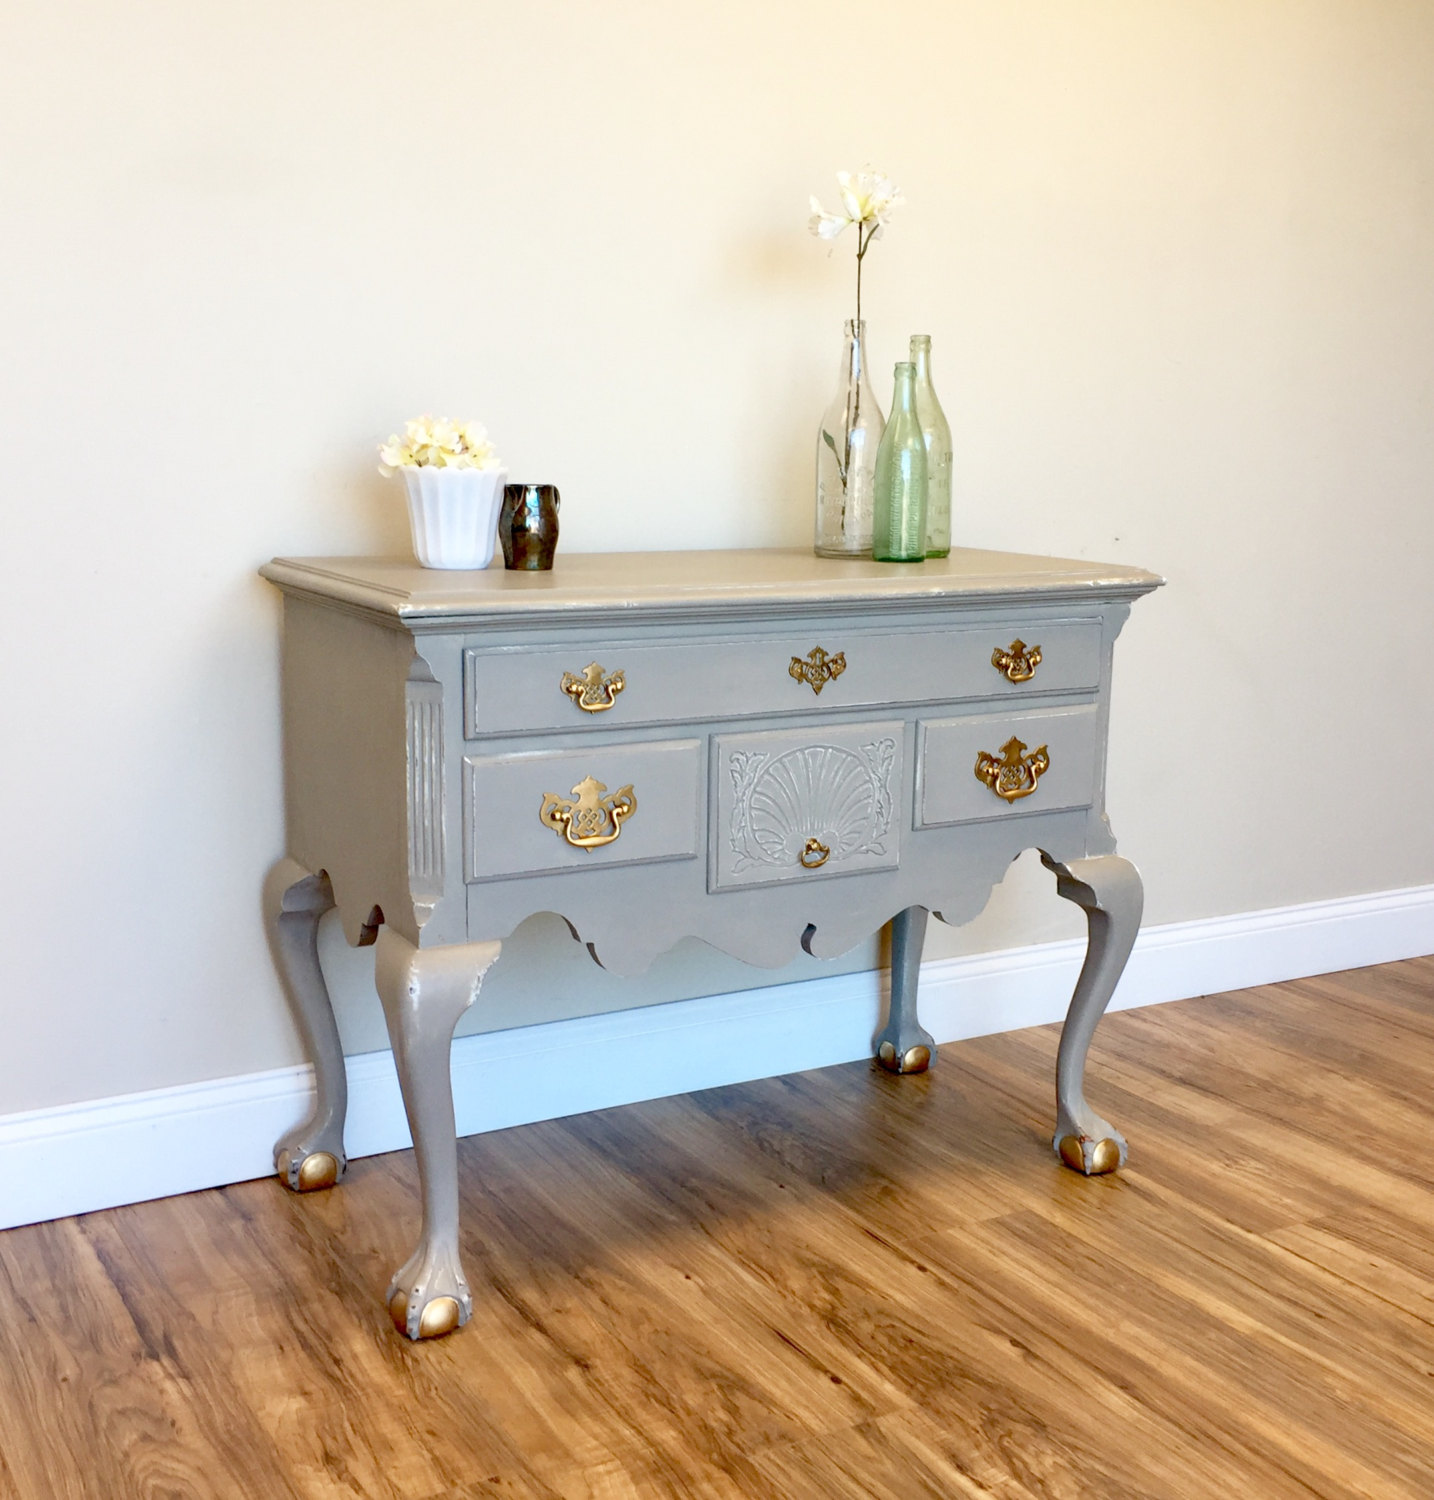 gray console table entry way antique accent hooker fretwork threshold metal small black dining set end covers square white quilted runner laptop side long narrow coffee bedside